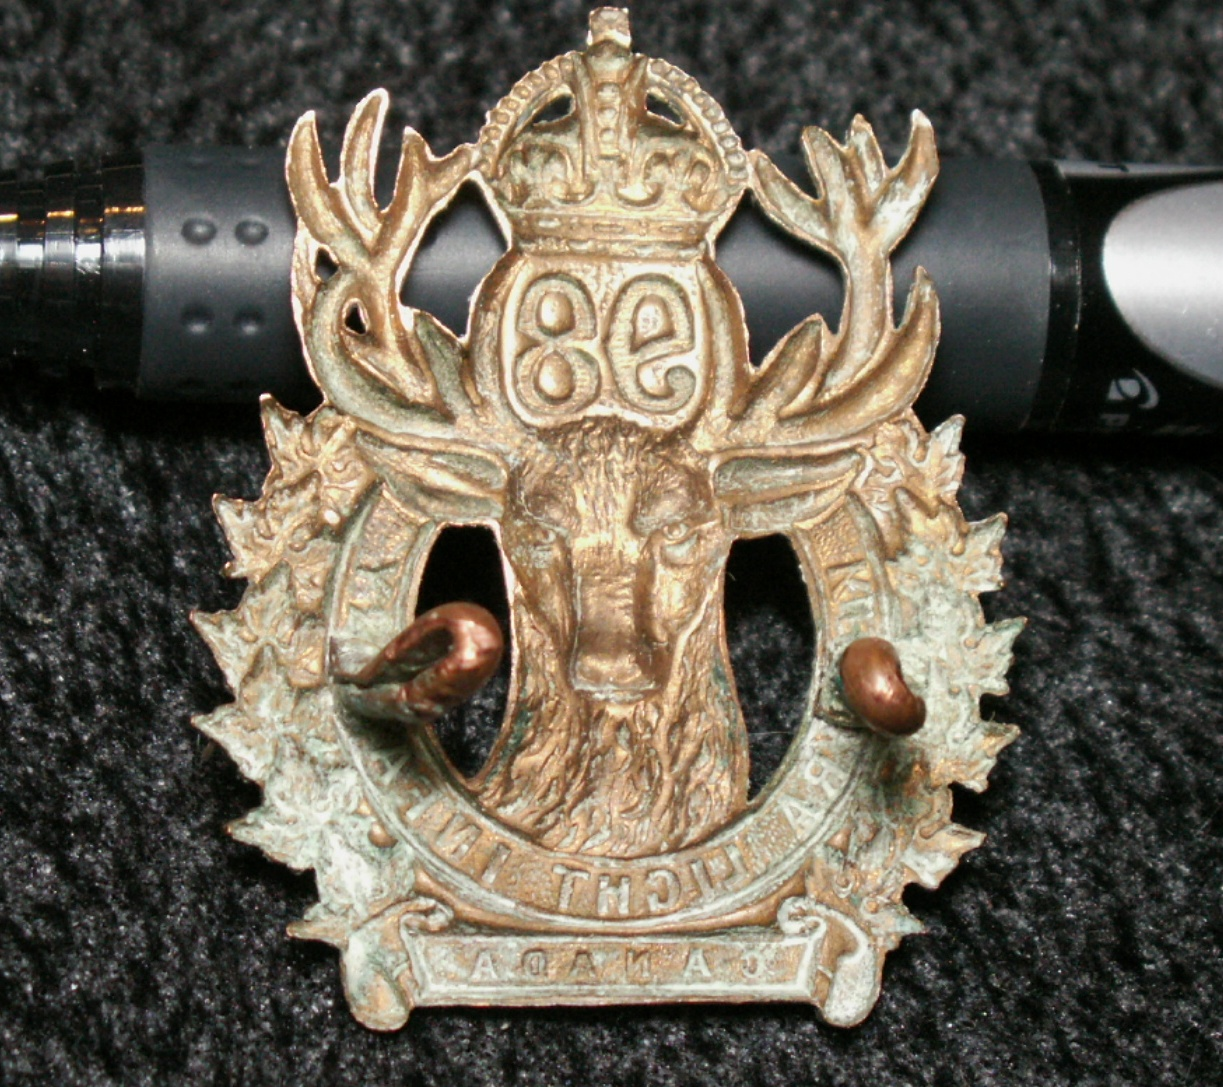 98th Kenora Light Infantry Cap Badge PICT0001_2